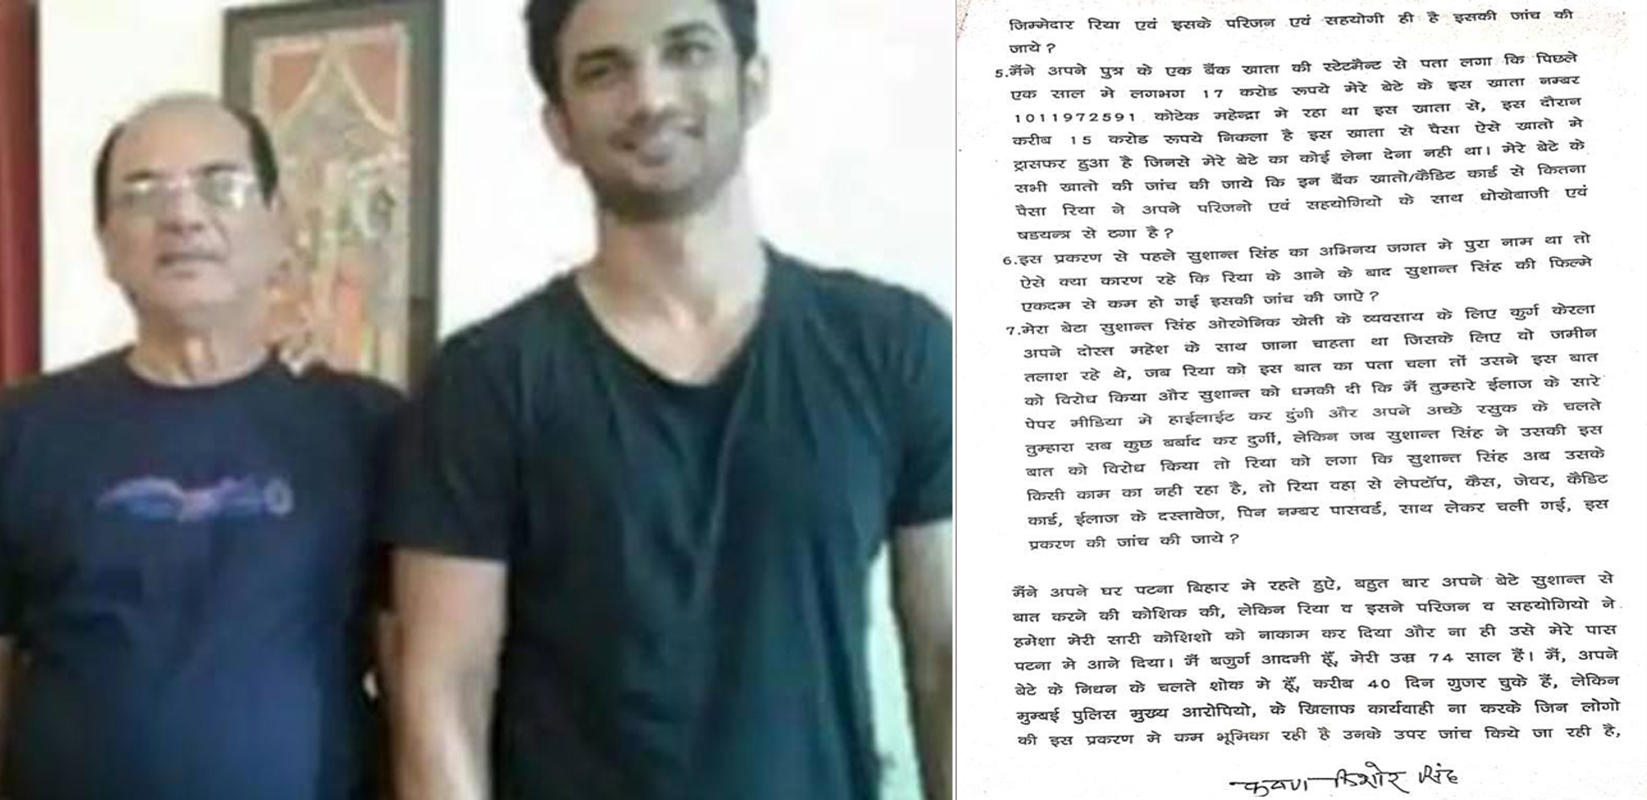 SSR's father raises 7 questions in FIR against Rhea Chakraborty; accuses her of theft & cheating